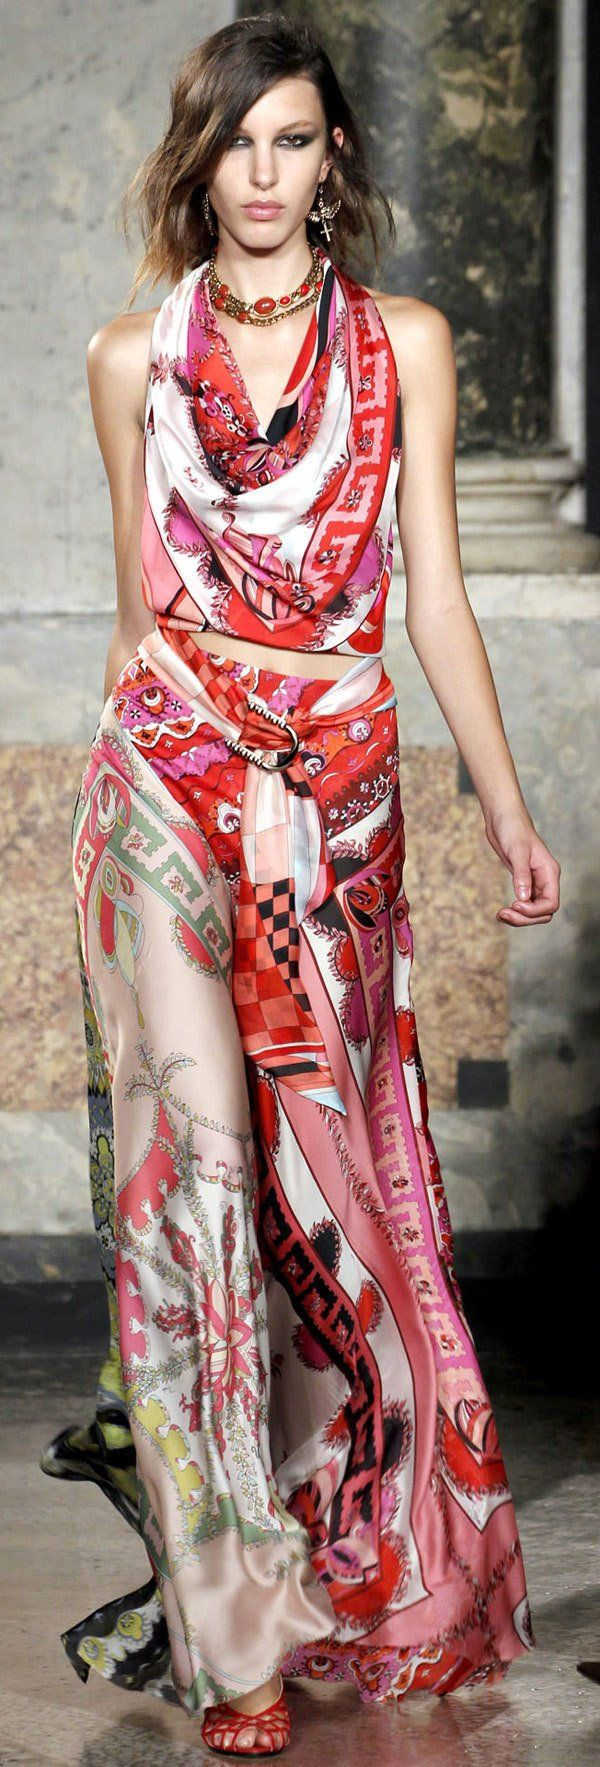 Emilio Pucci - I love the cut and the fabric - the way it moves like something crawling of itself, but I would like a different print.